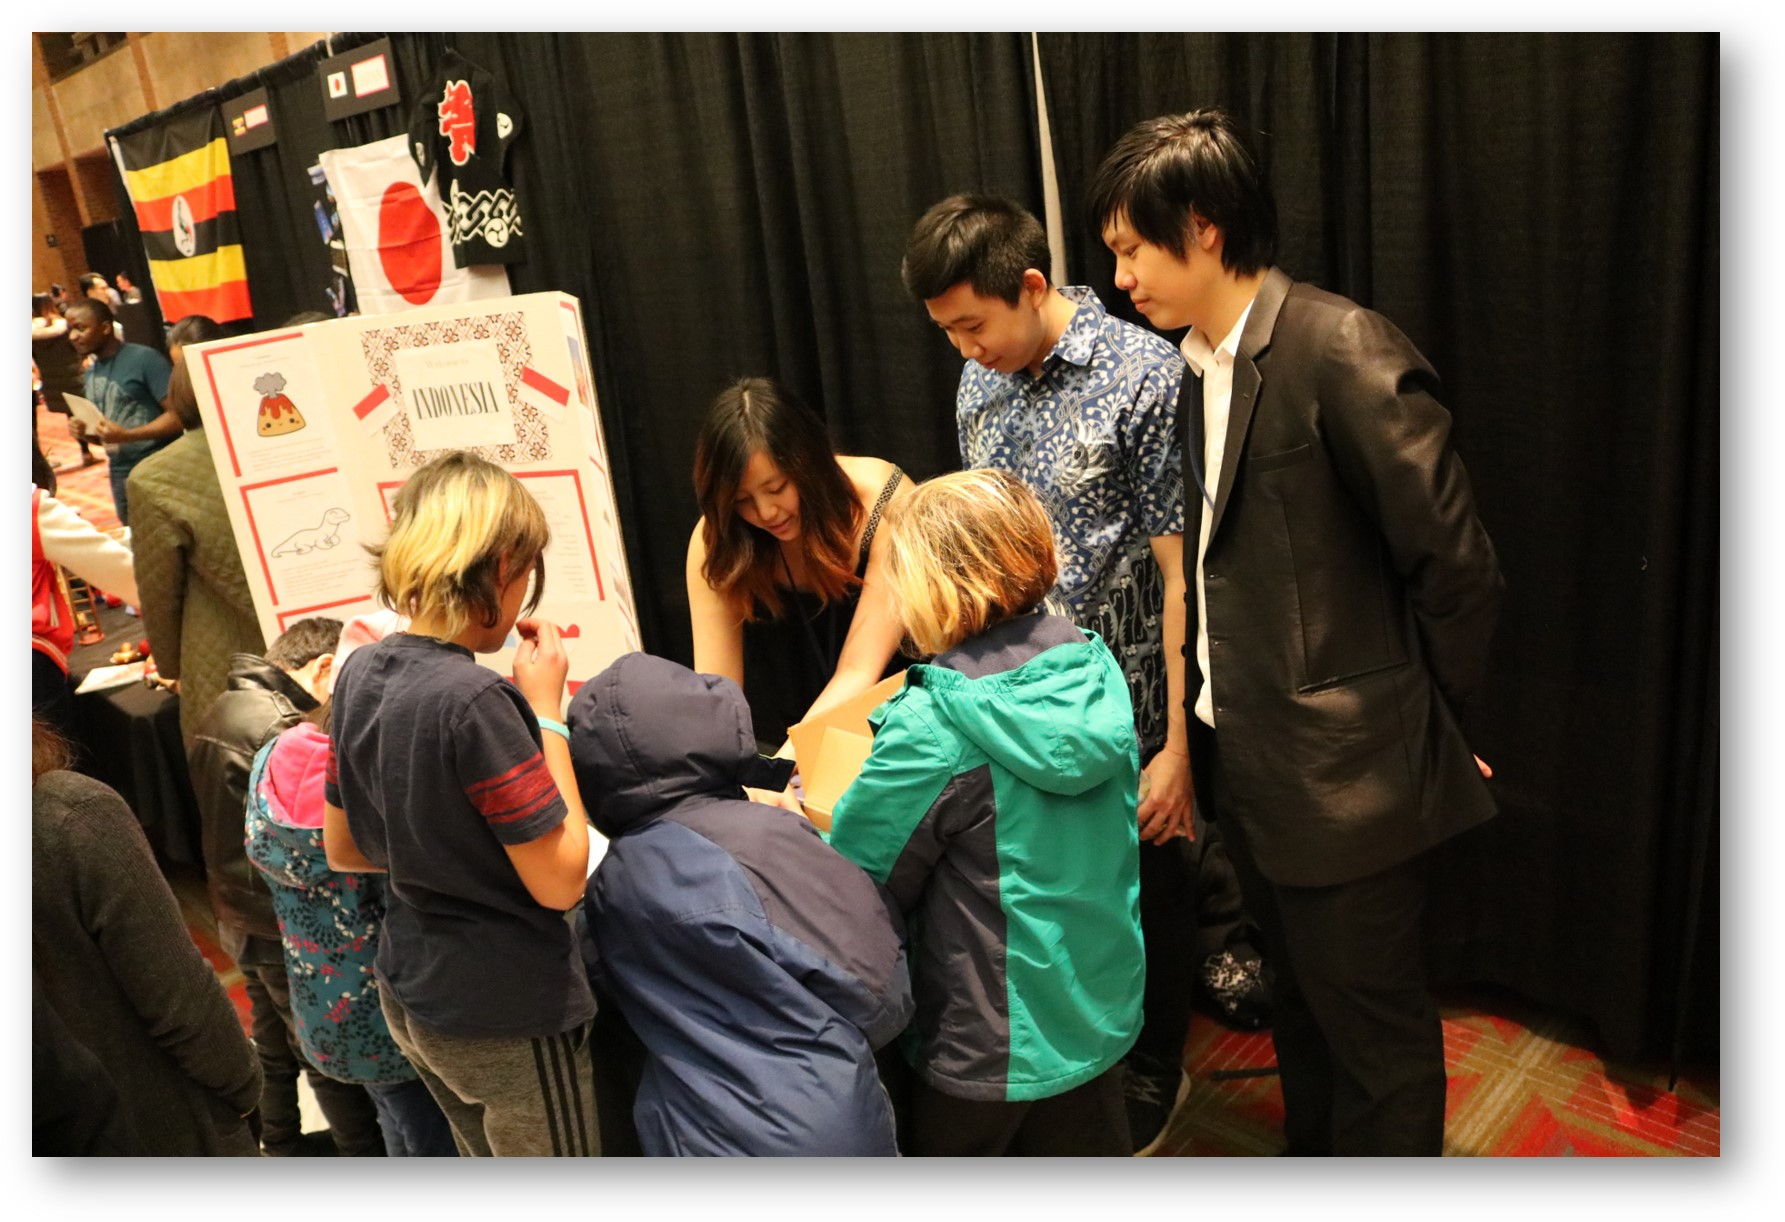 Maddie interacting with kids at the CulturalFest Expo